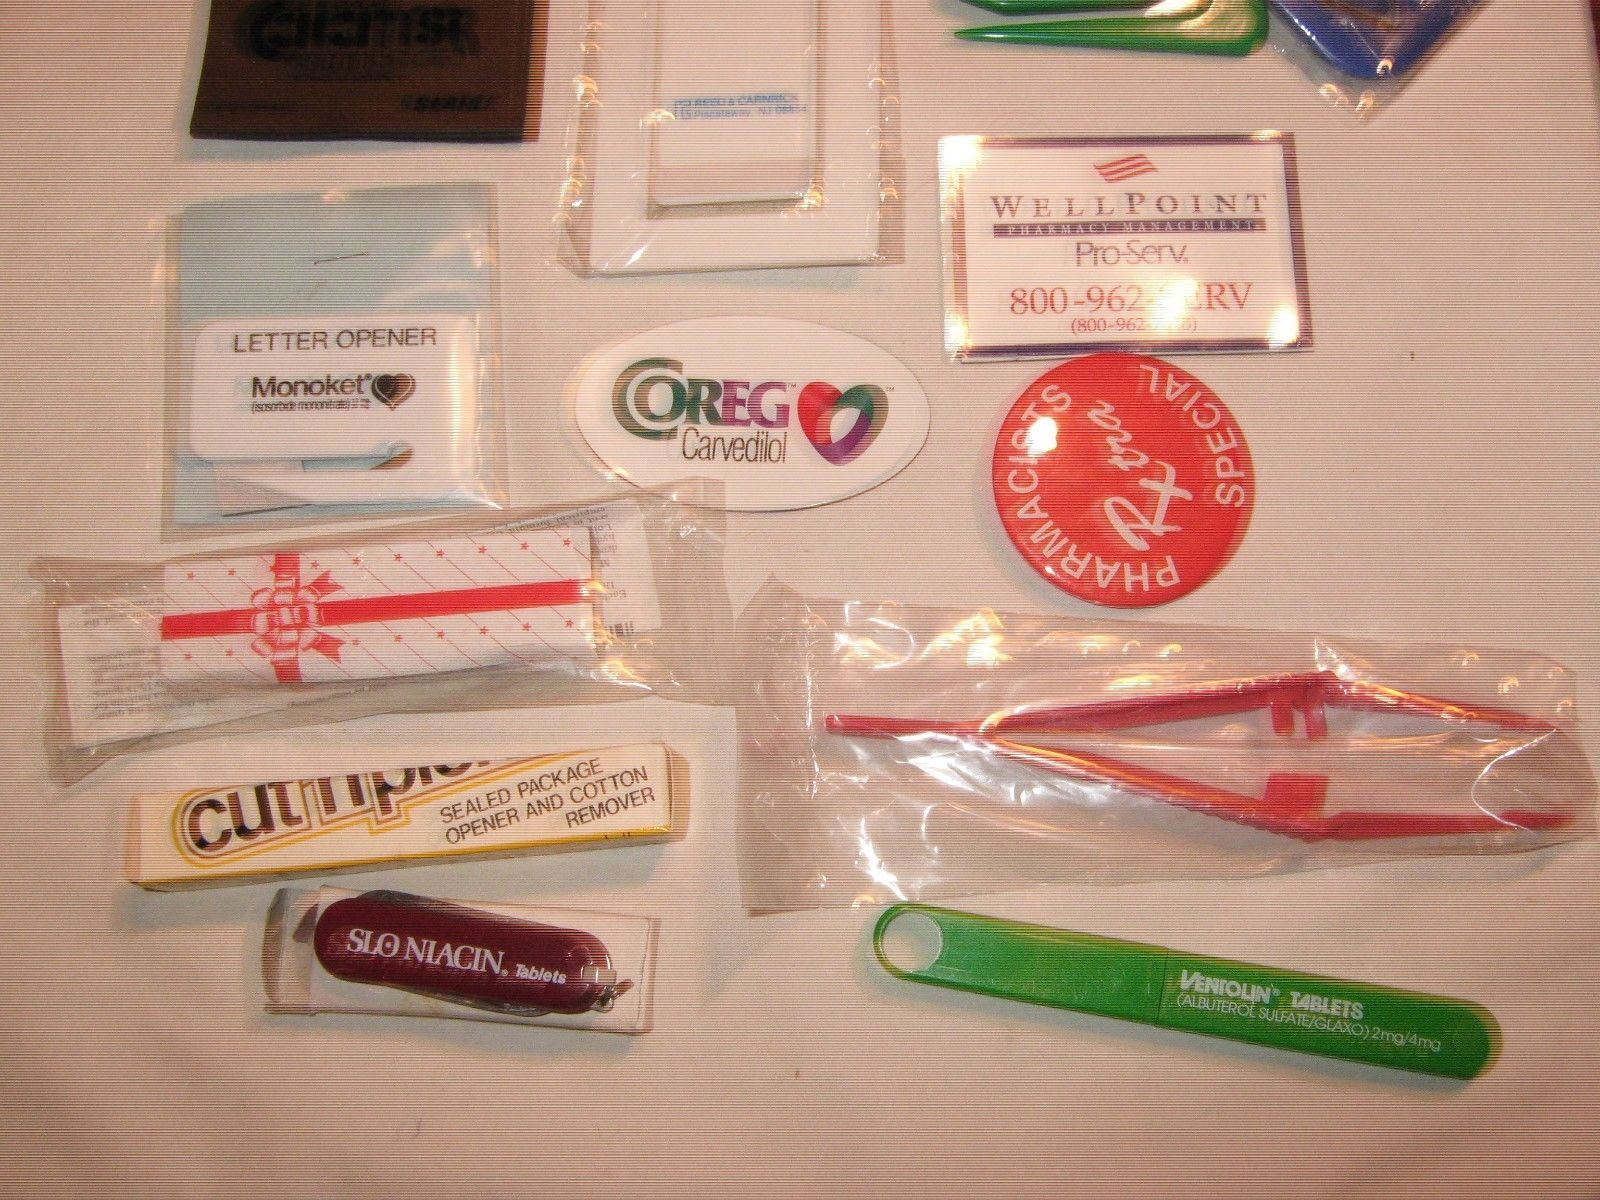 Rx, Pharmacy Promotional Items, Mixed Lot image 5